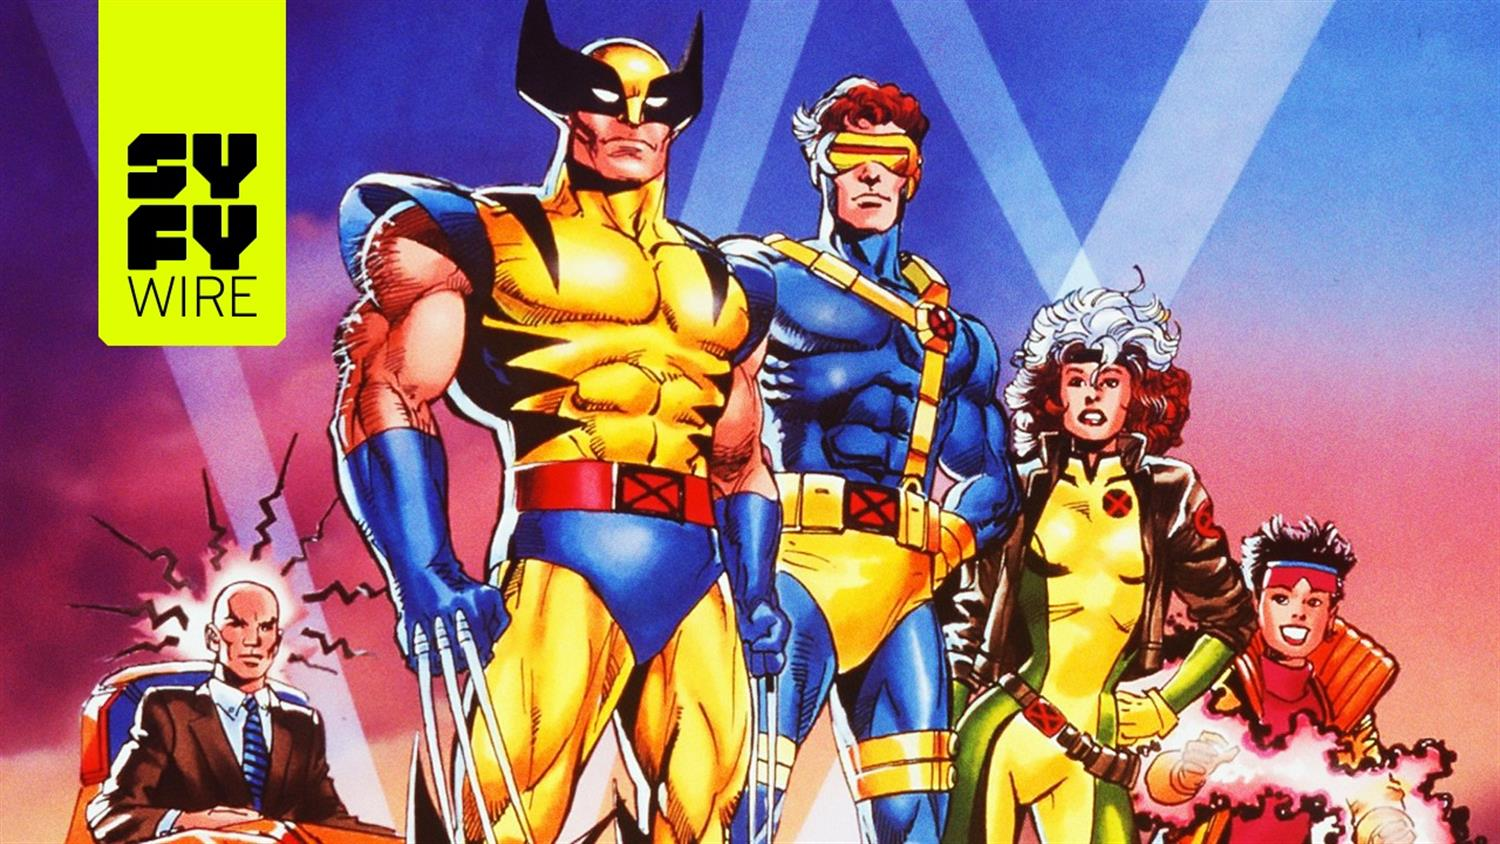 Did X-Men The Animated Series Give Birth To The MCU?